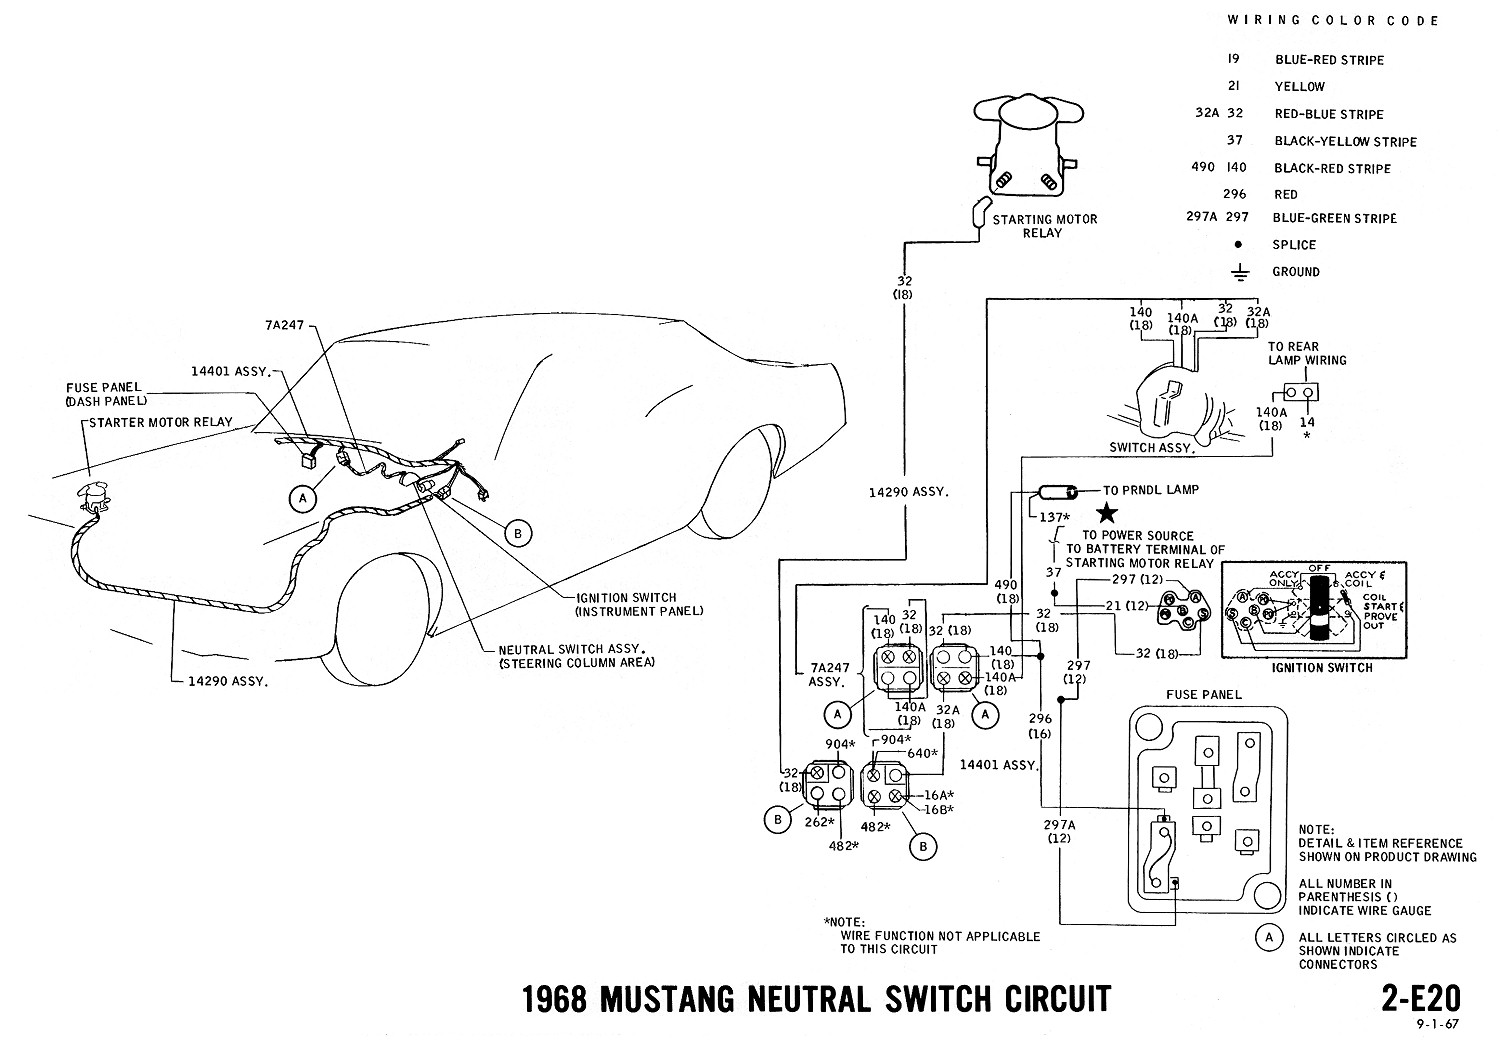 1968 Master Wiring Diagram. NEUTRAL SWITCH